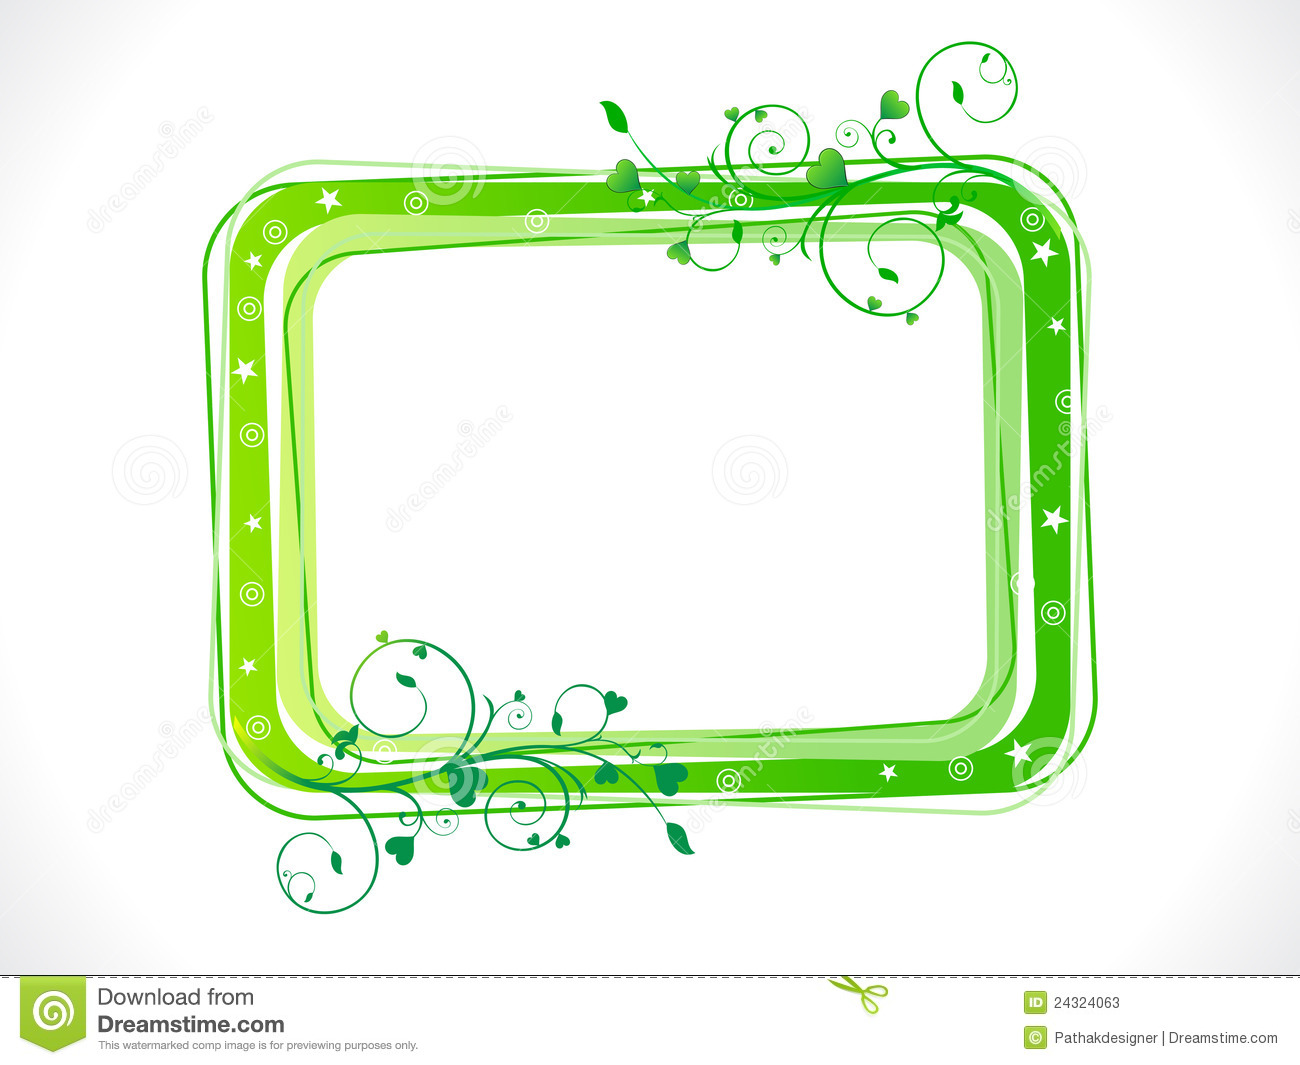 Green eco frame stock vector. Illustration of flora, abstract - 17988199